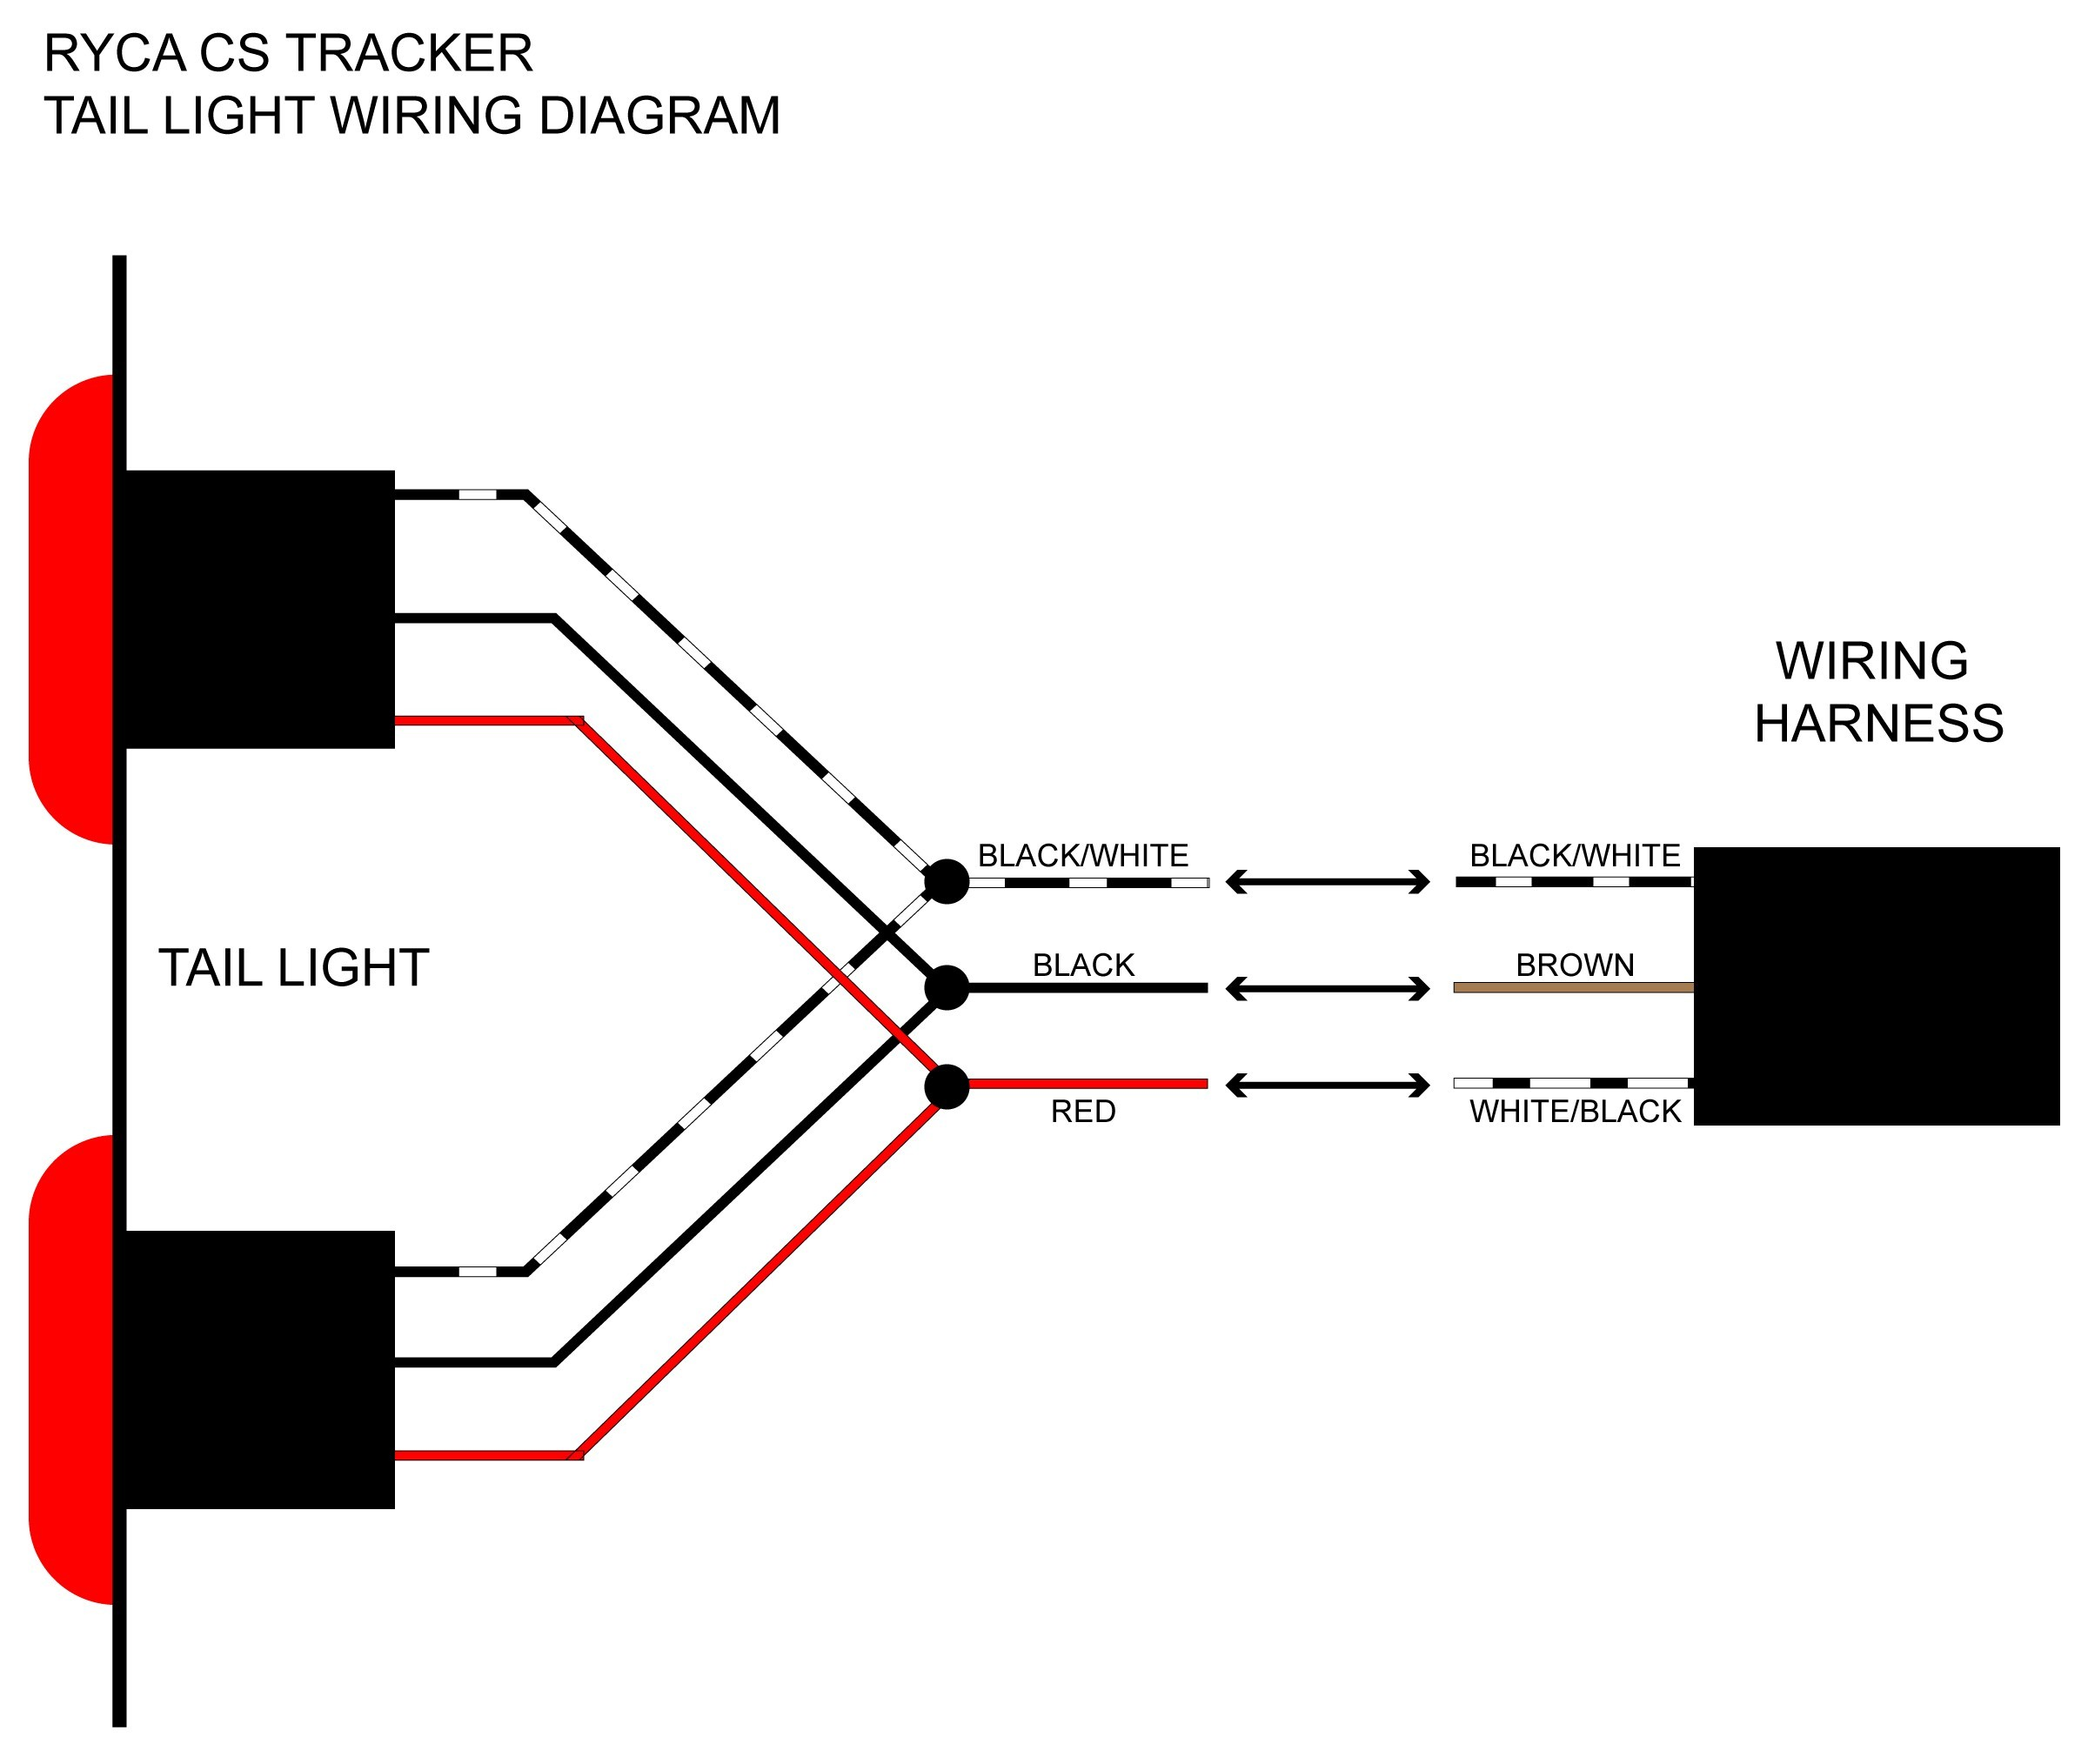 4 Way Wiring Diagram For Tail Light